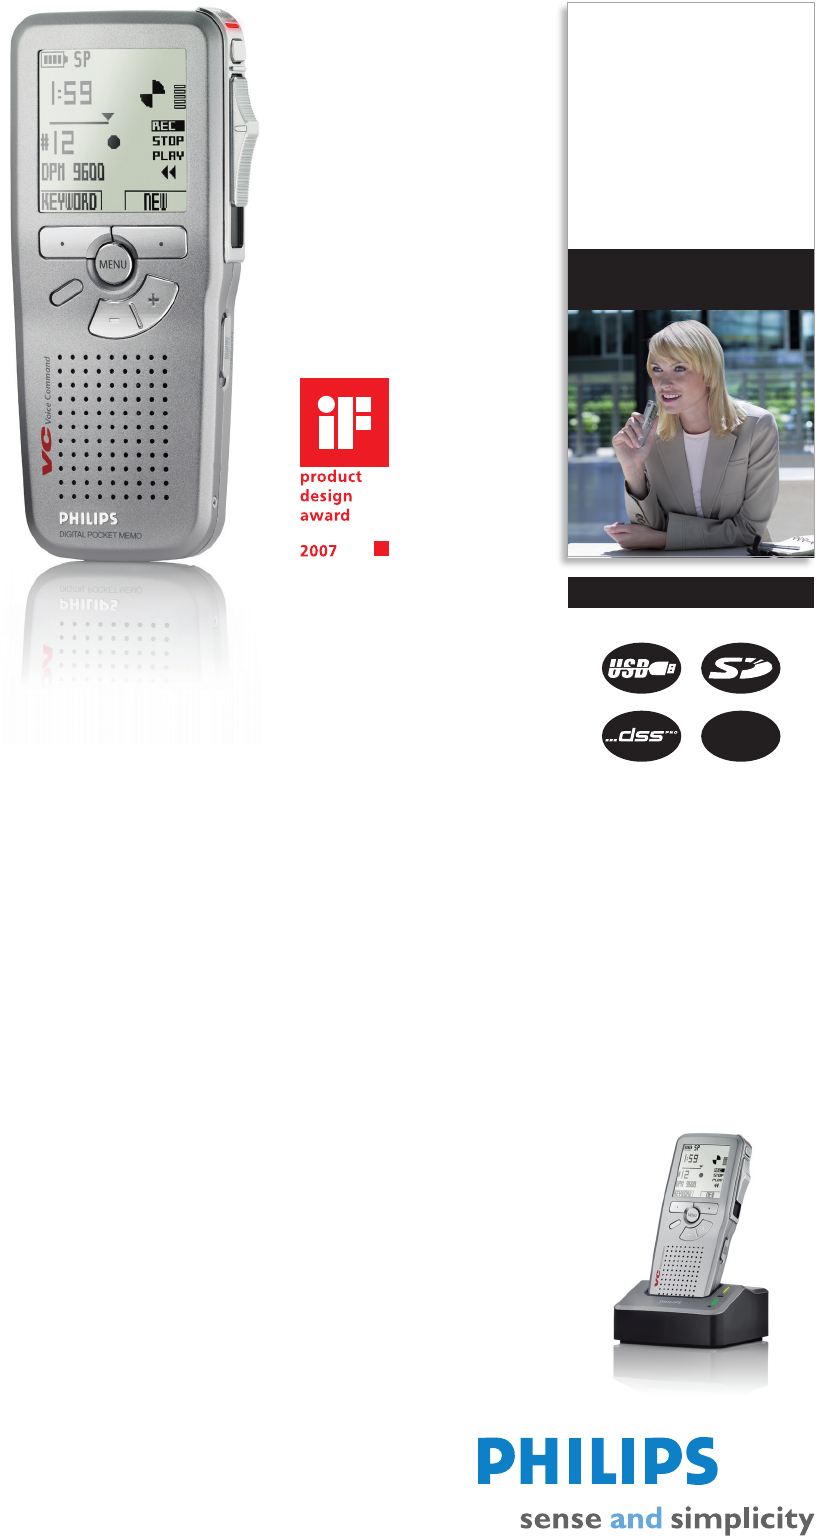 philips camcorder lfh 9620 user guide manualsonline com rh camera manualsonline com Philips TV Manual Philips TV Manual